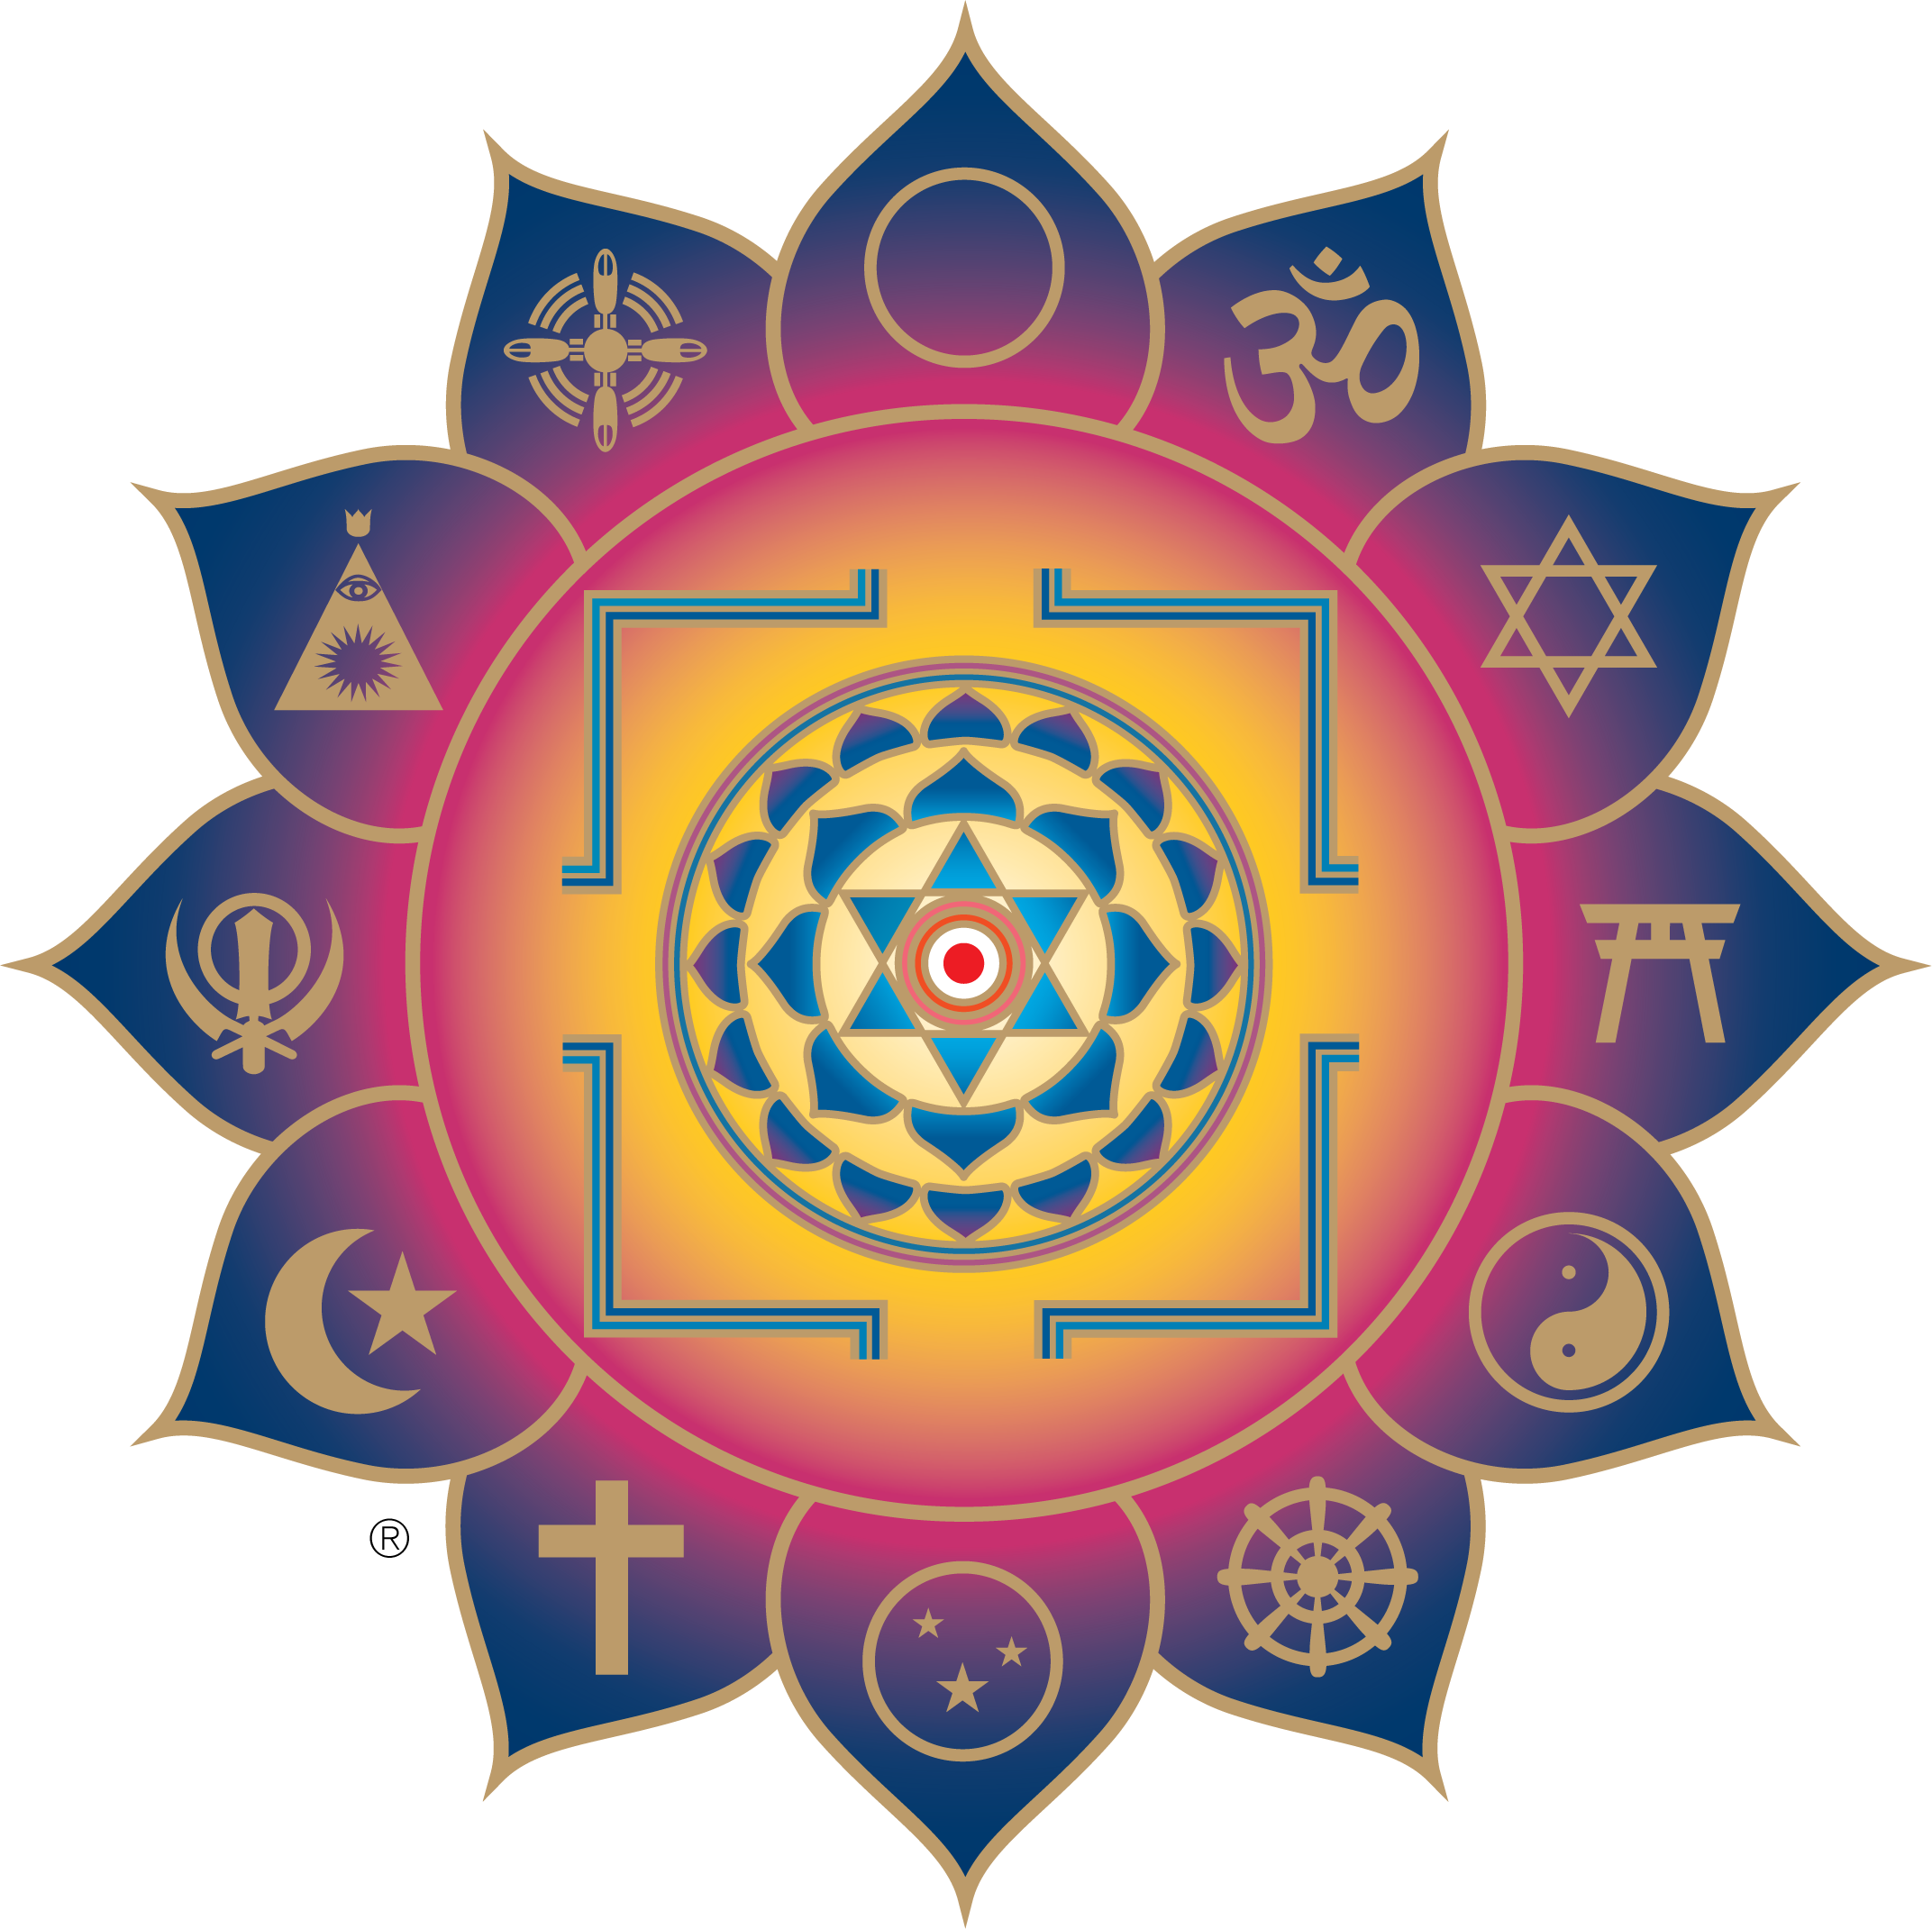 Integral Yoga Interfaith Yantra